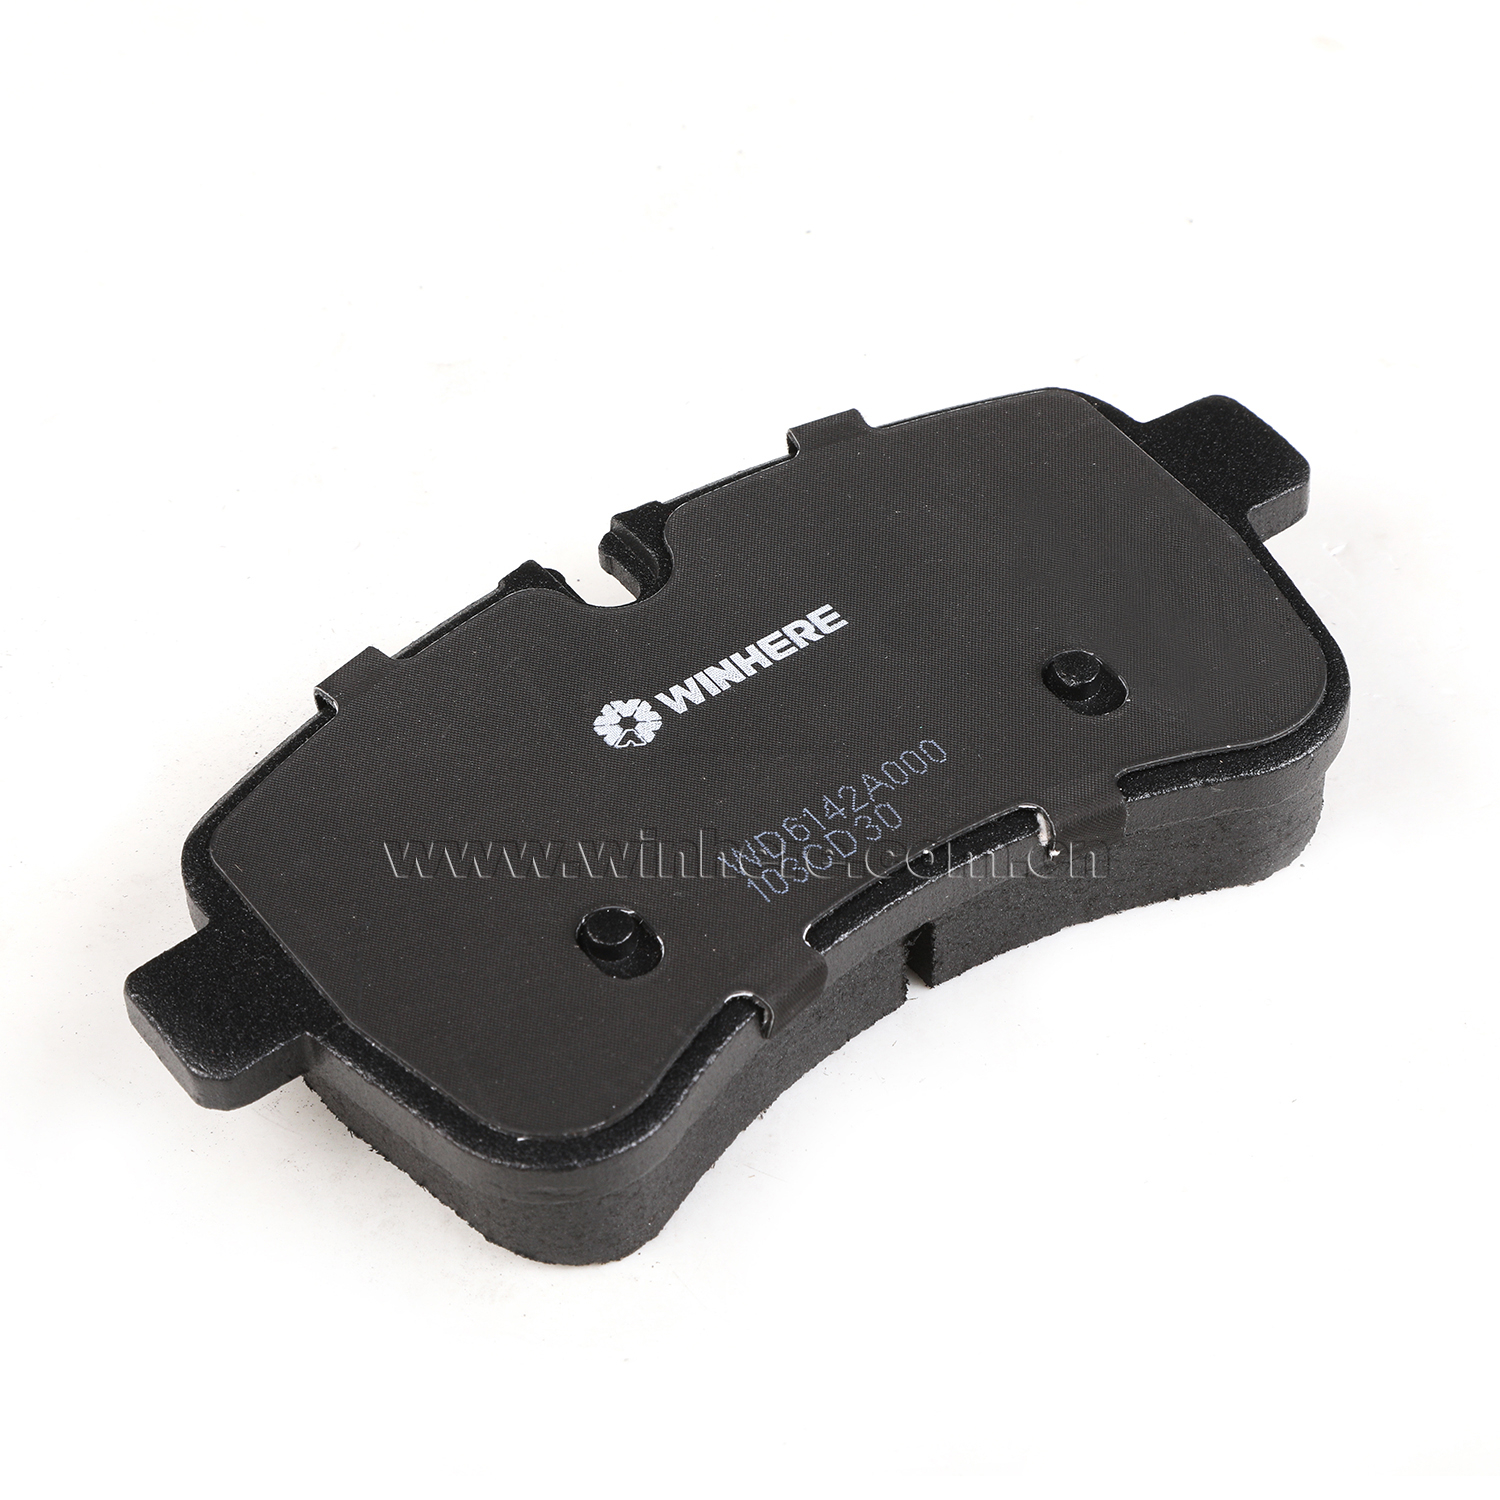 Ceramic Copper Free Brake Pad ECE R90